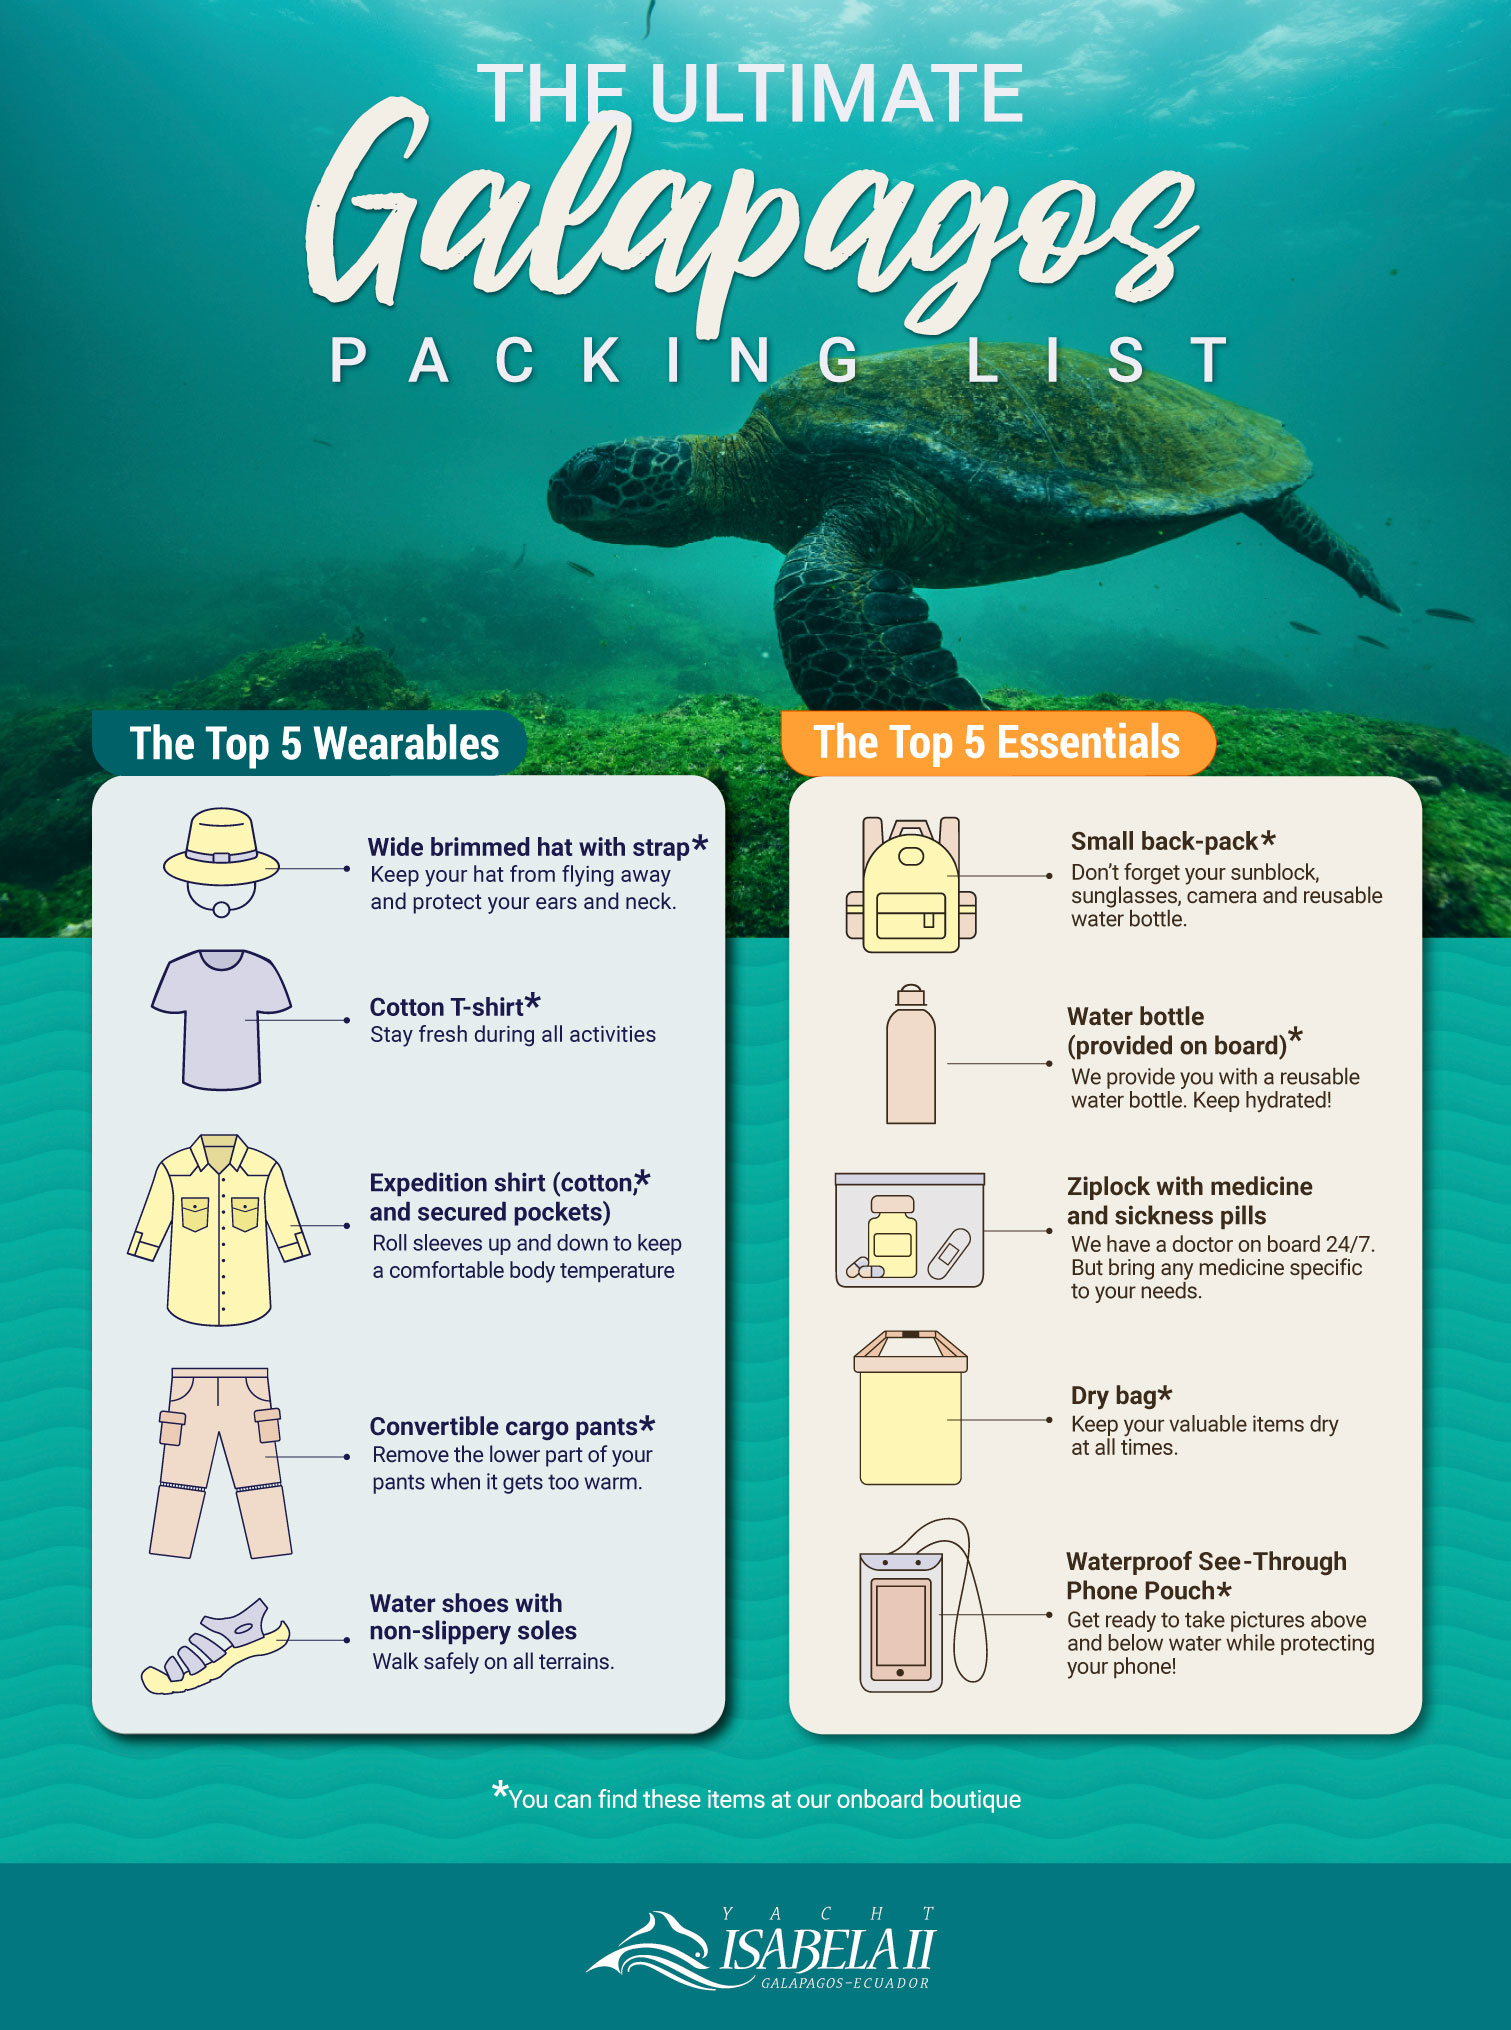 Everything you need to bring to the Galapagos Islands